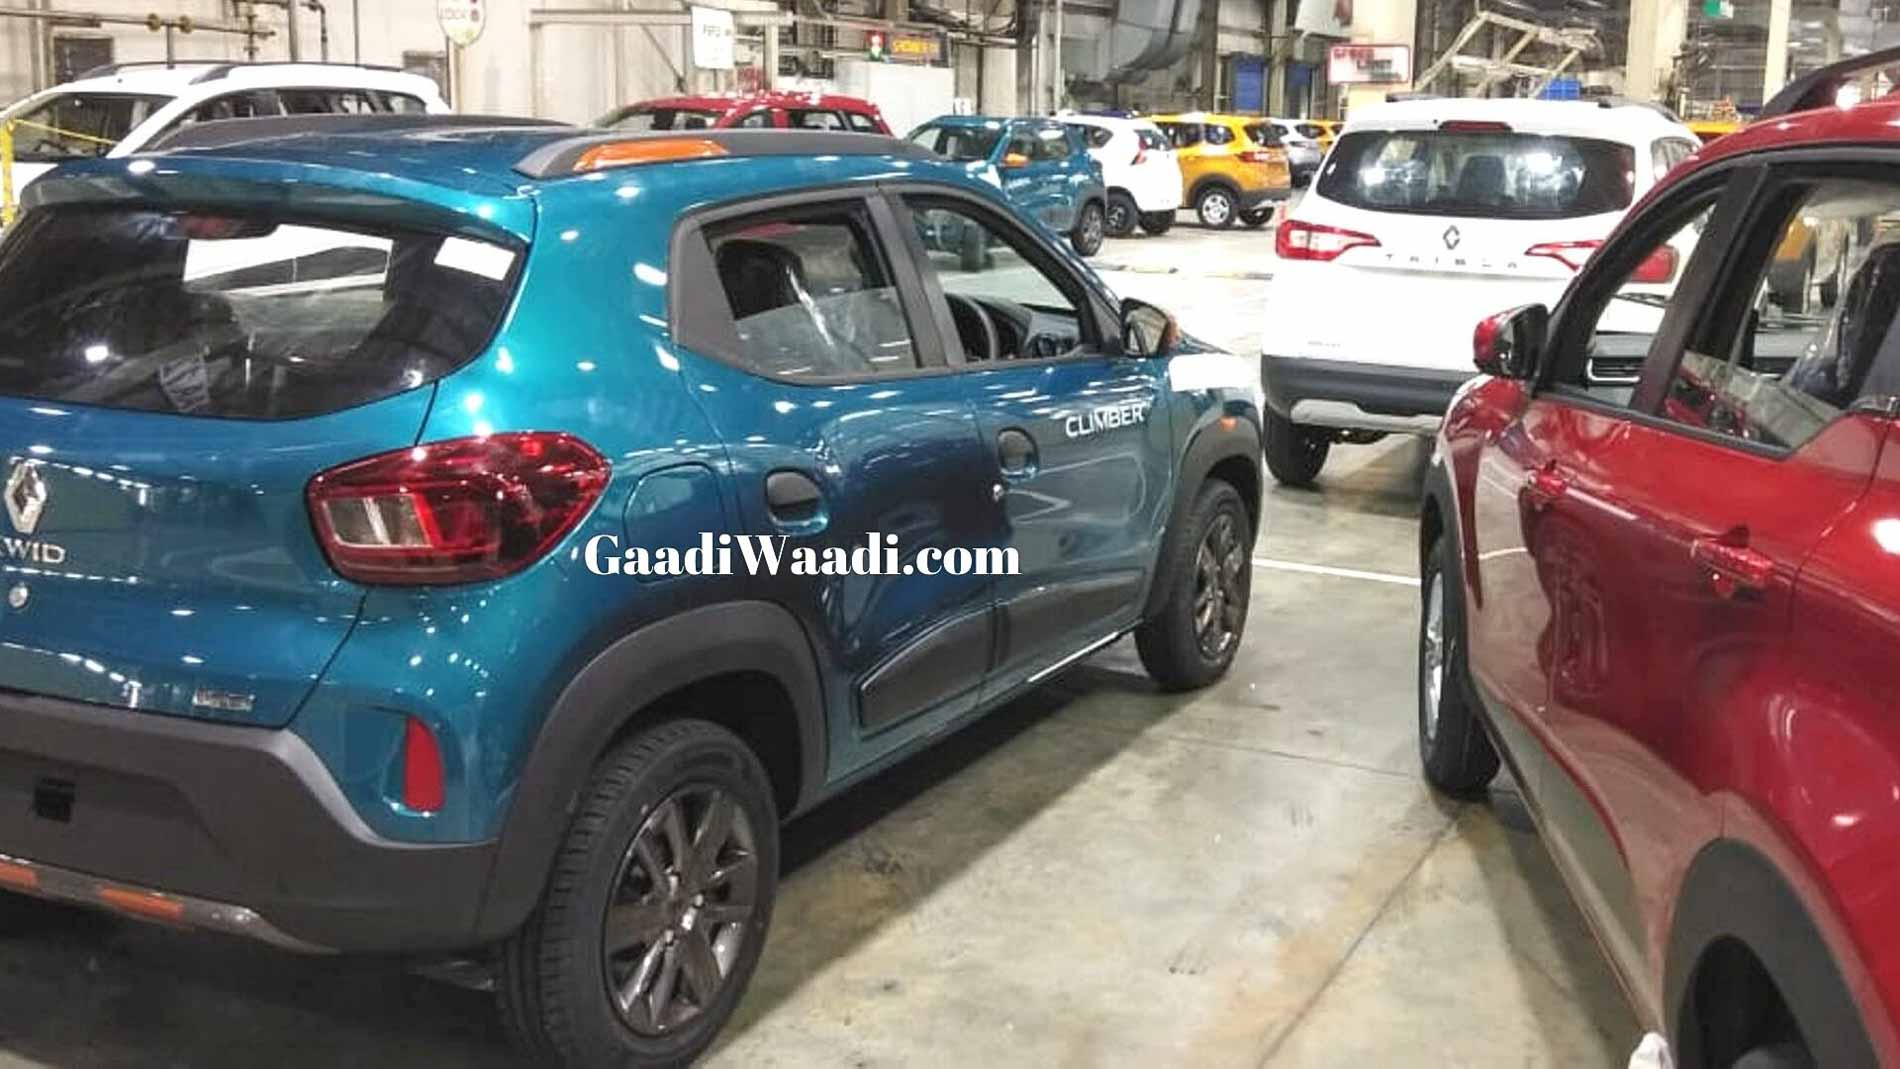 2015 - [Renault] Kwid [BBA] (Inde) [BBB] (Brésil) - Page 33 2020-renault-kwid-climber-facelift-pics-5